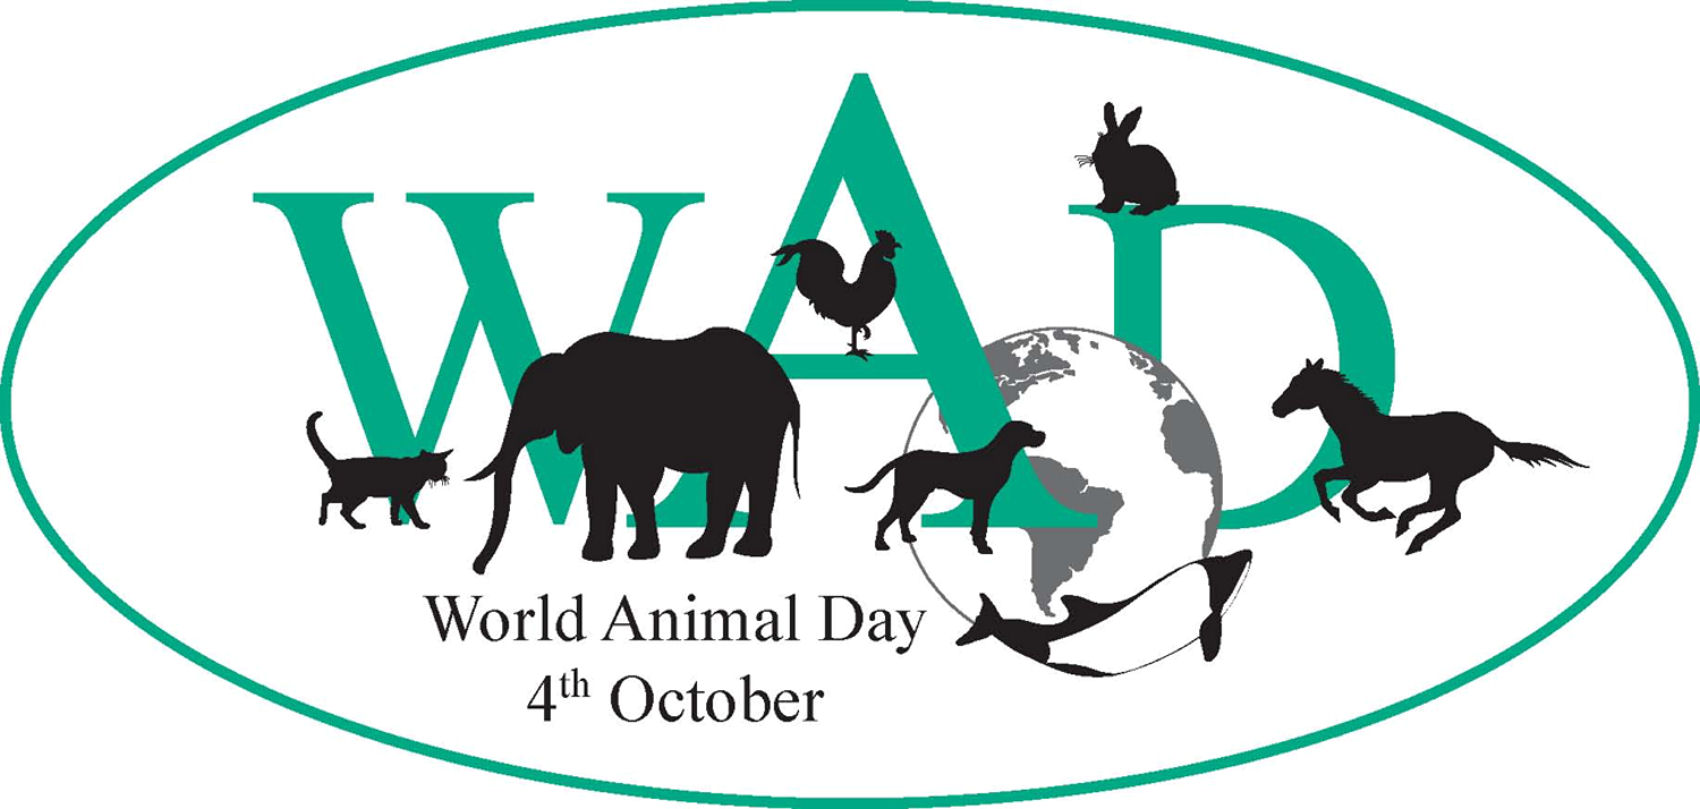 World-Animal-Day-logo-final-1700-pixels-wide - World Wildlife Day PNG